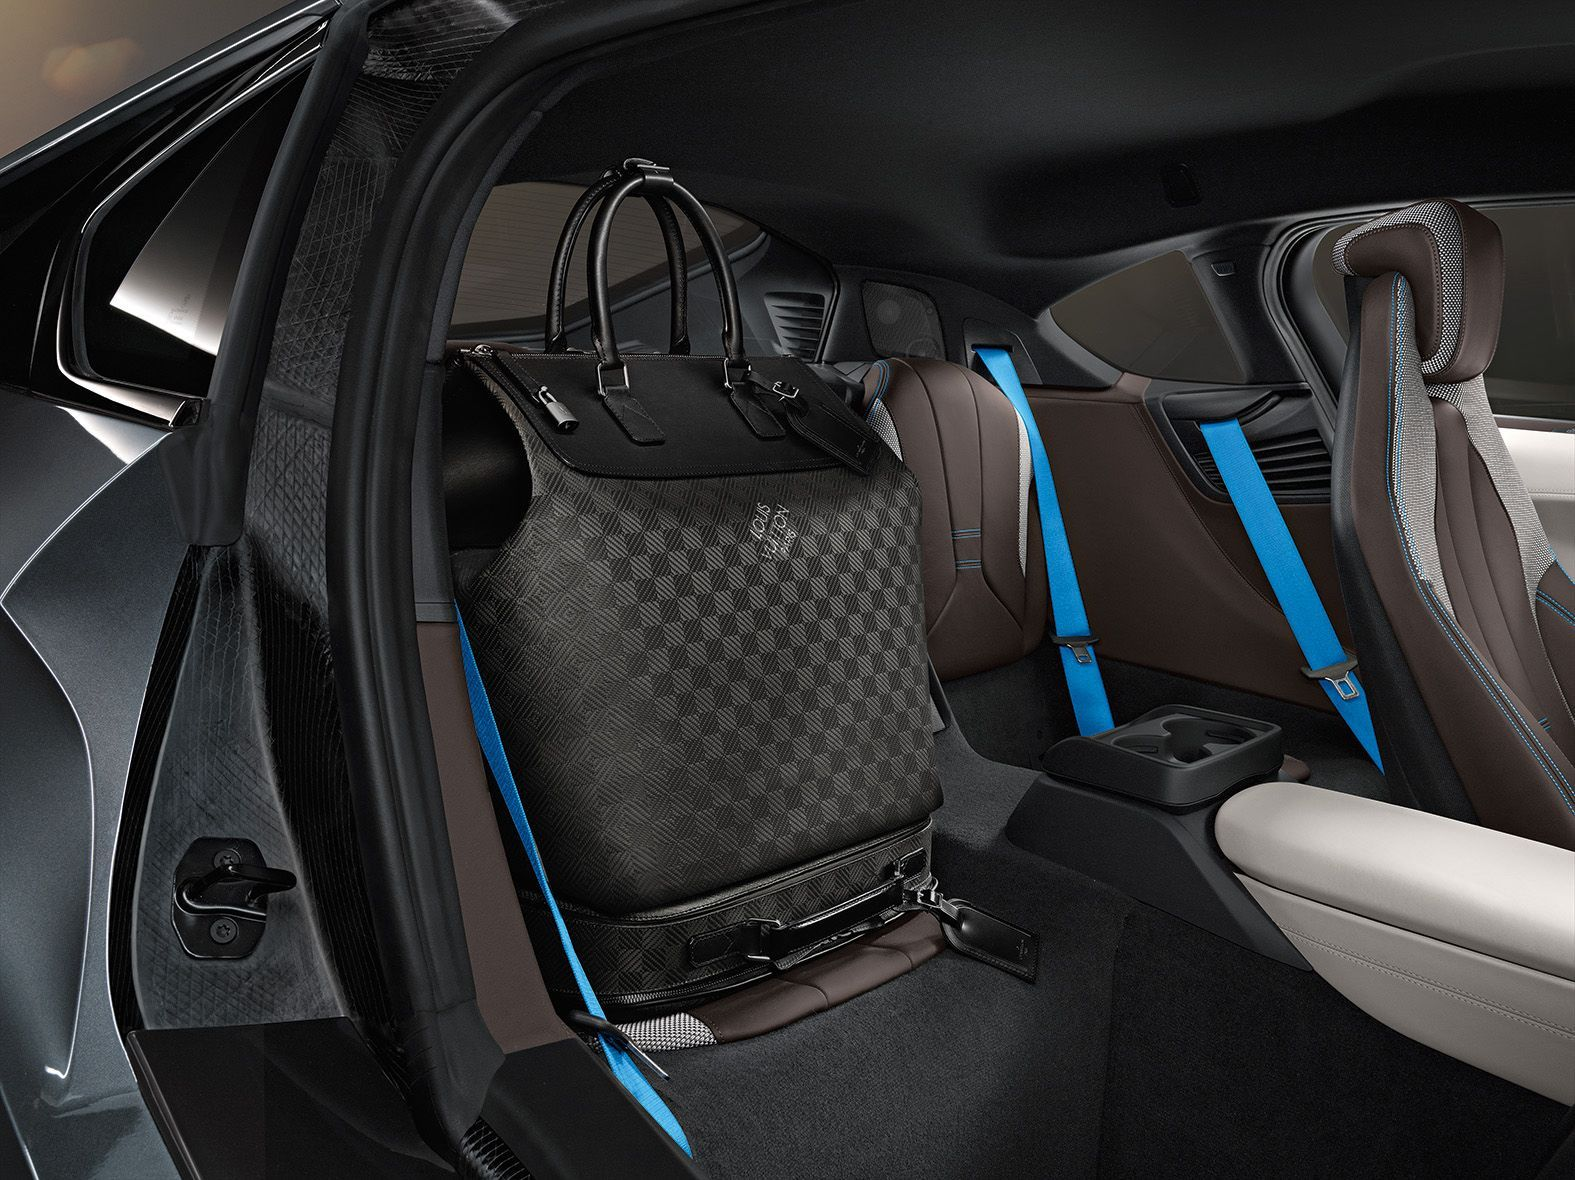 ... Coupe Series Black Bmw I8 : Louis Vuitton Tailor Made Luggage For BMW I8  ...